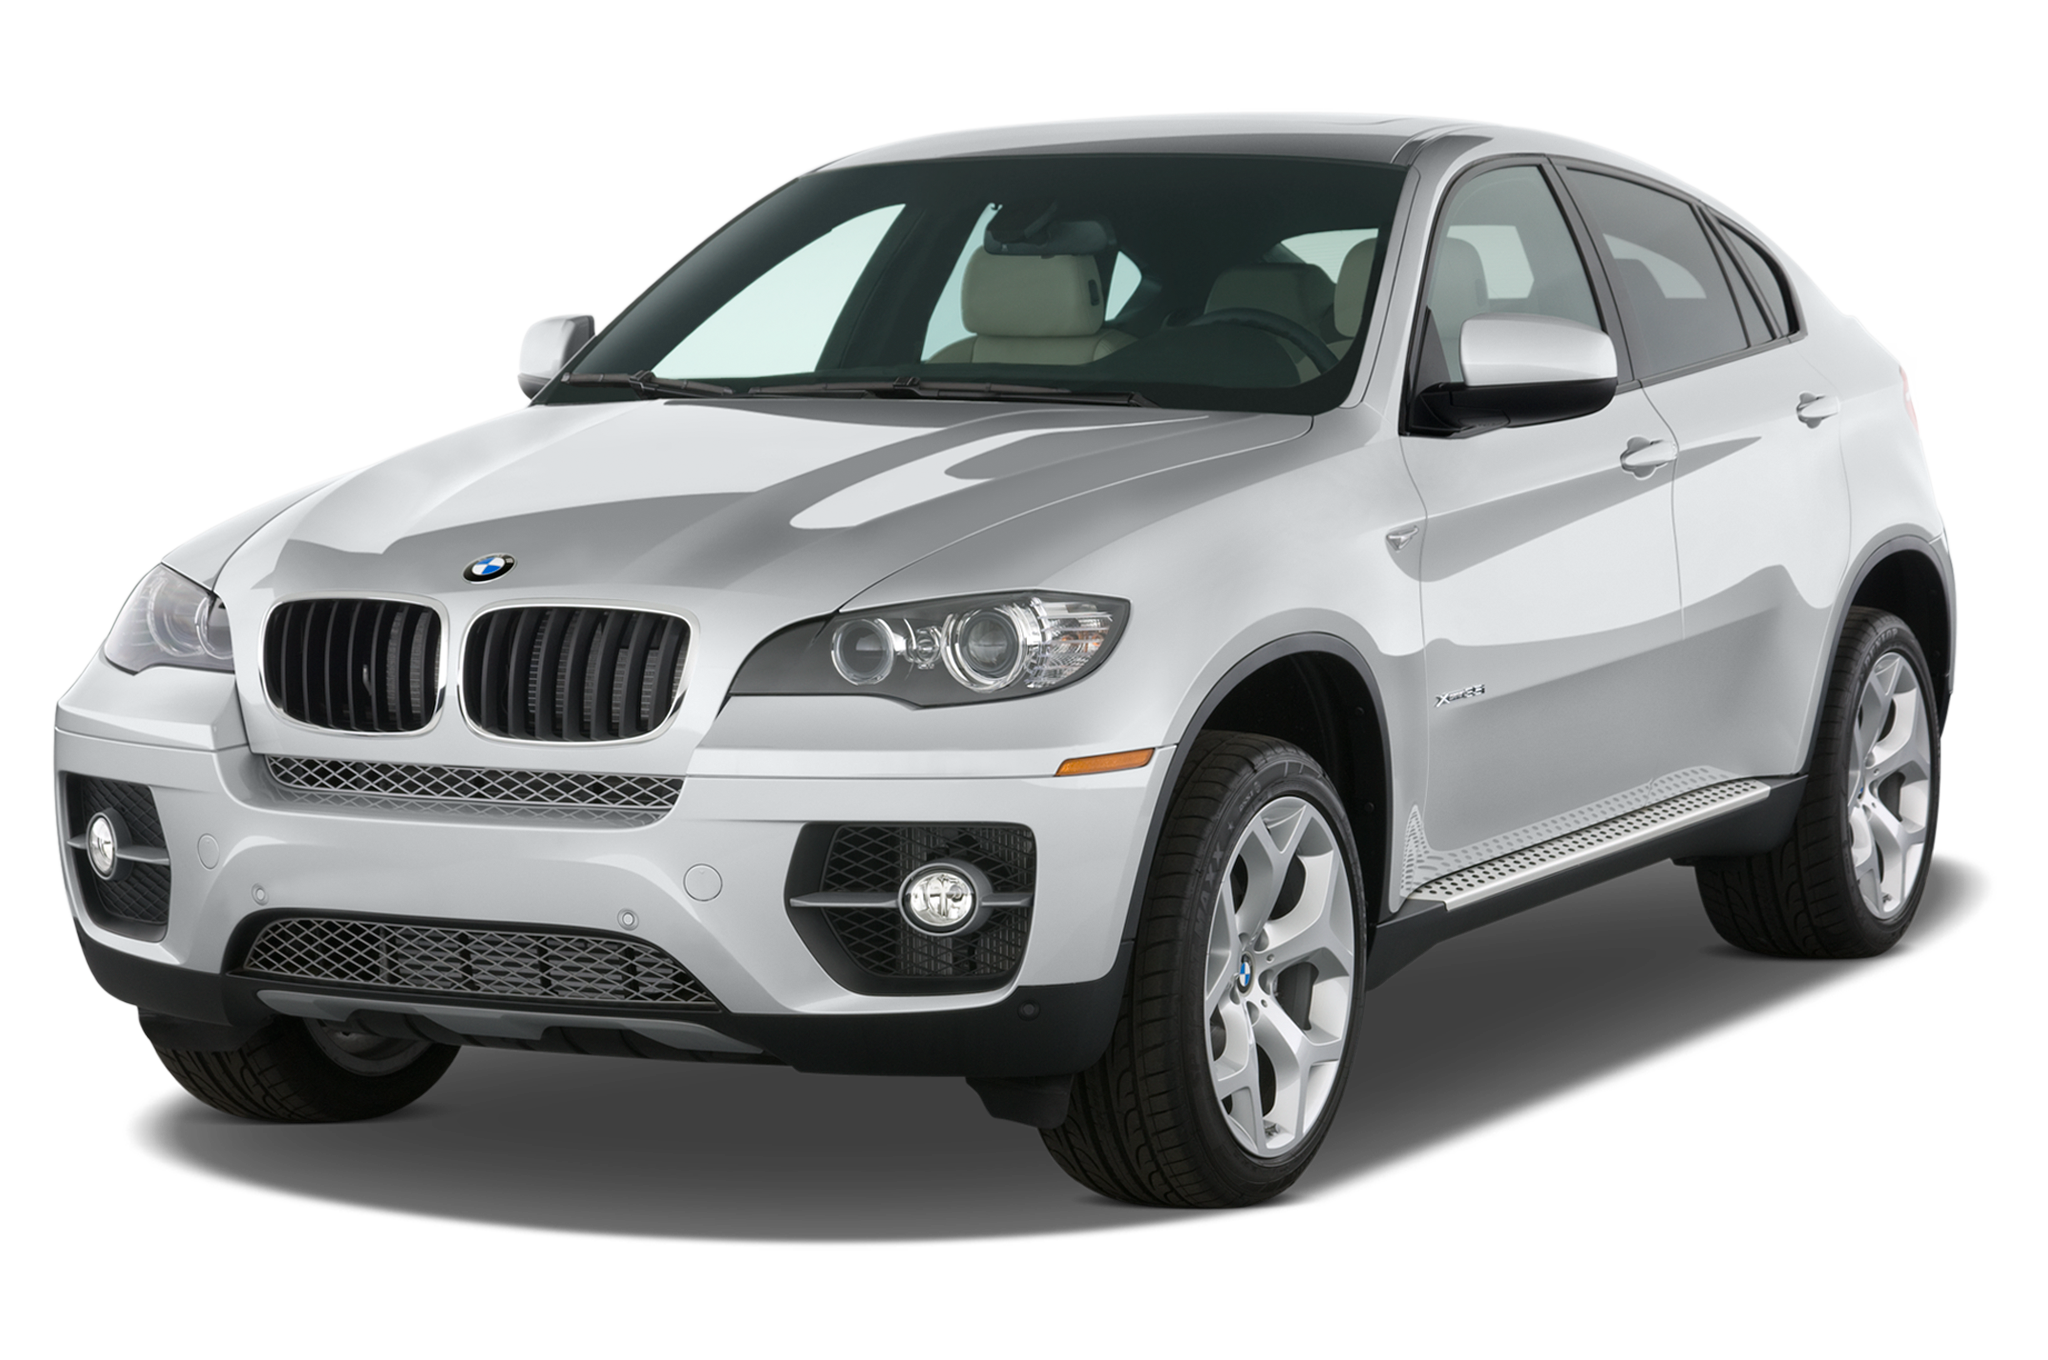 Spotted Is This Bmw X6m Packing A Tri Turbo Diesel